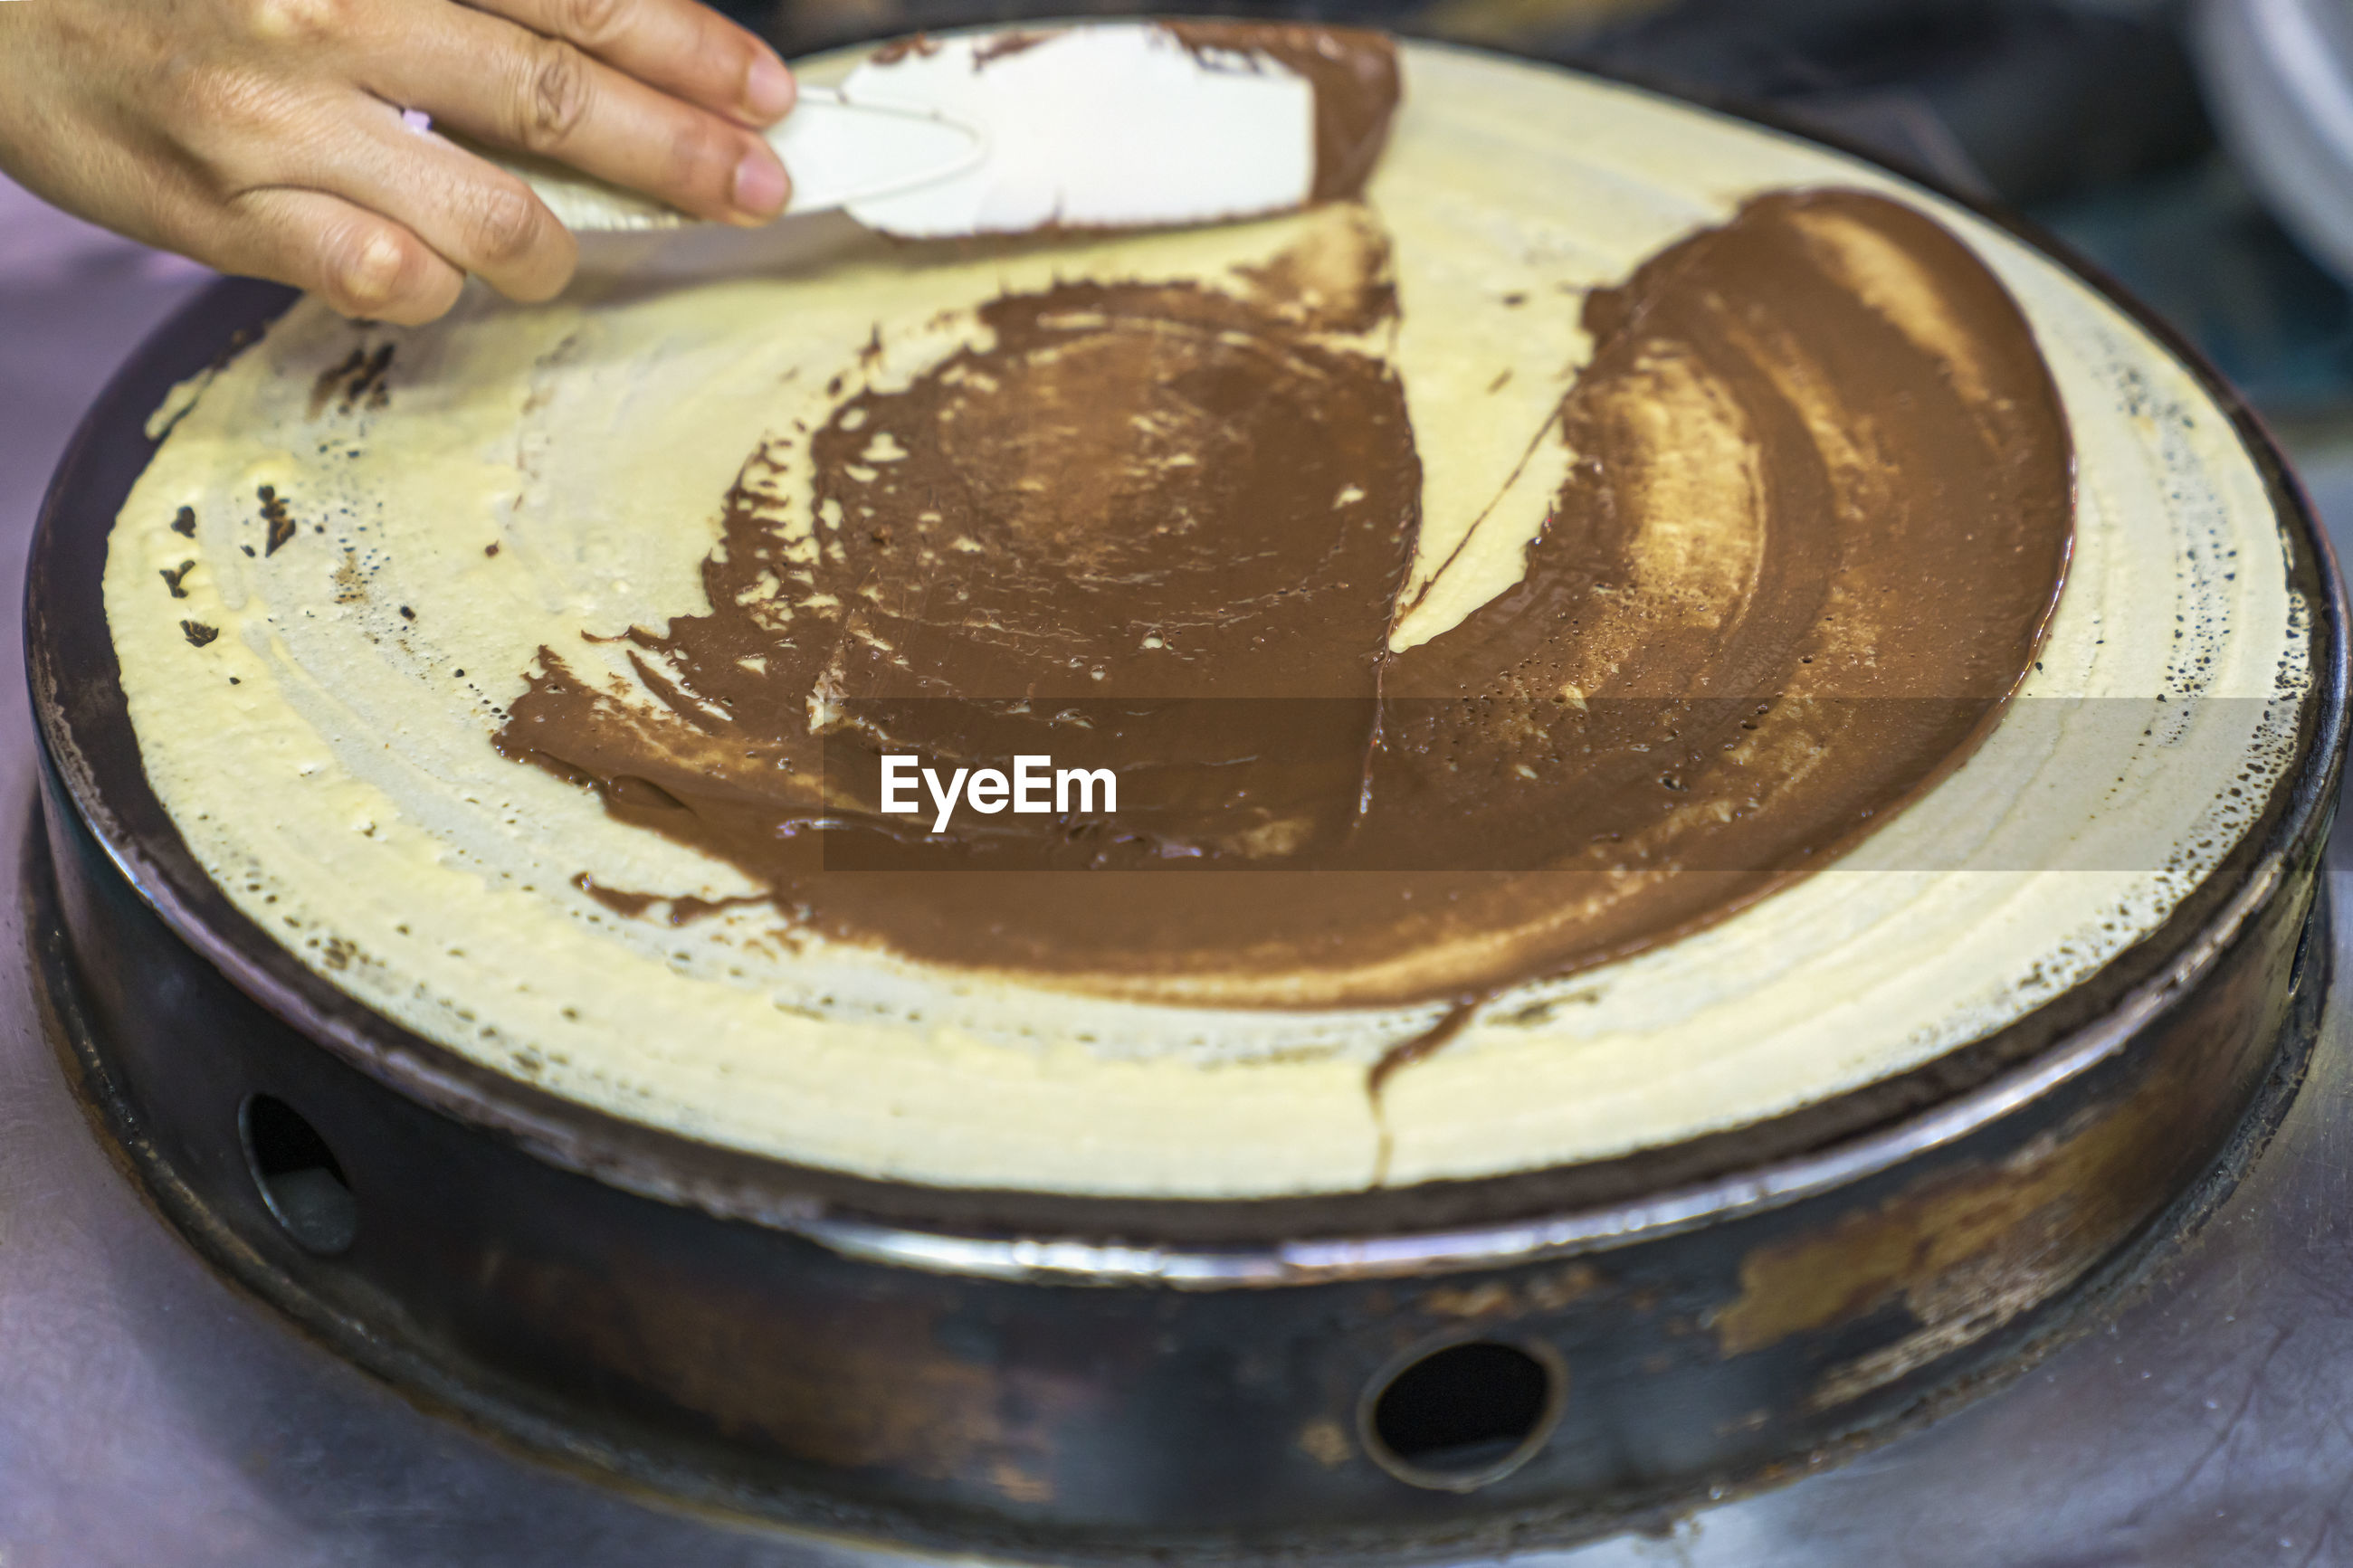 HIGH ANGLE VIEW OF PERSON PREPARING CAKE IN PLATE